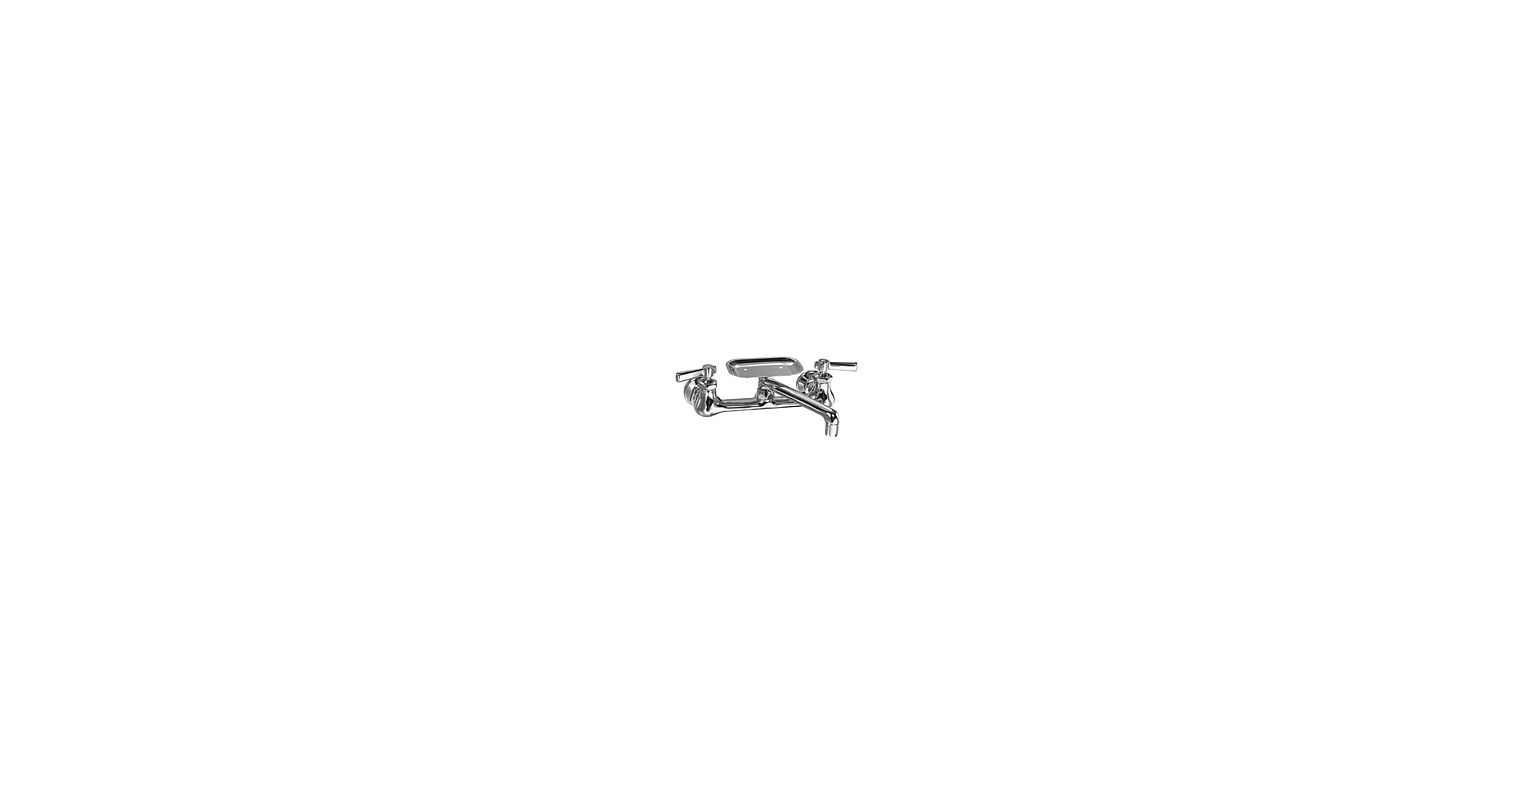 UPC 611943572334 - Chicago Faucets 540-ABCP Chrome Wall Mounted ...